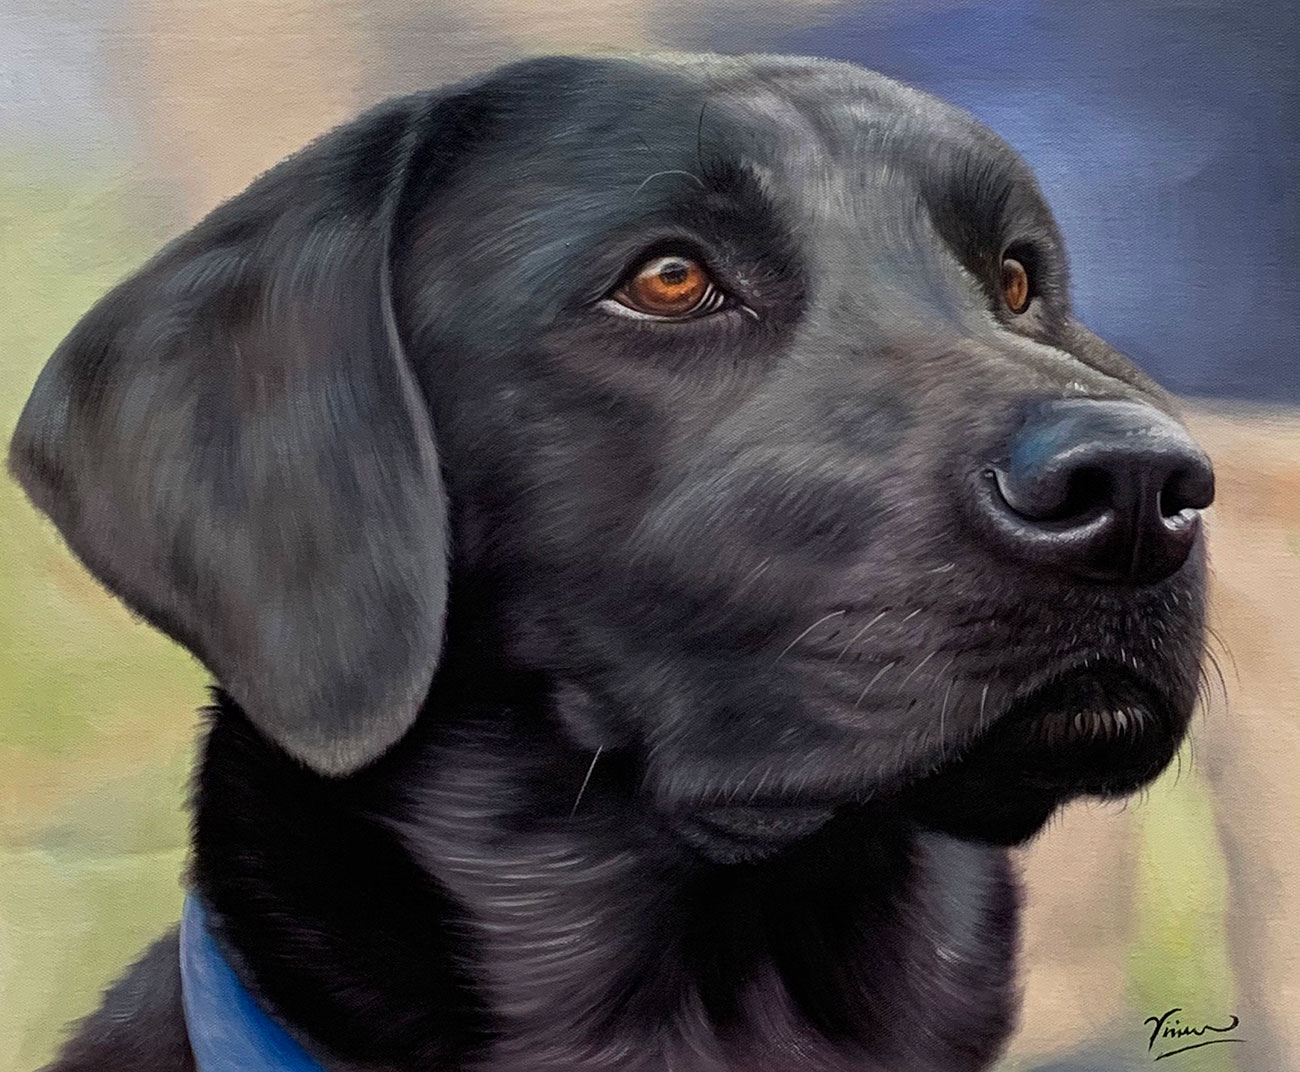 Hand painted portrait from photo of beautiful black lab dog.